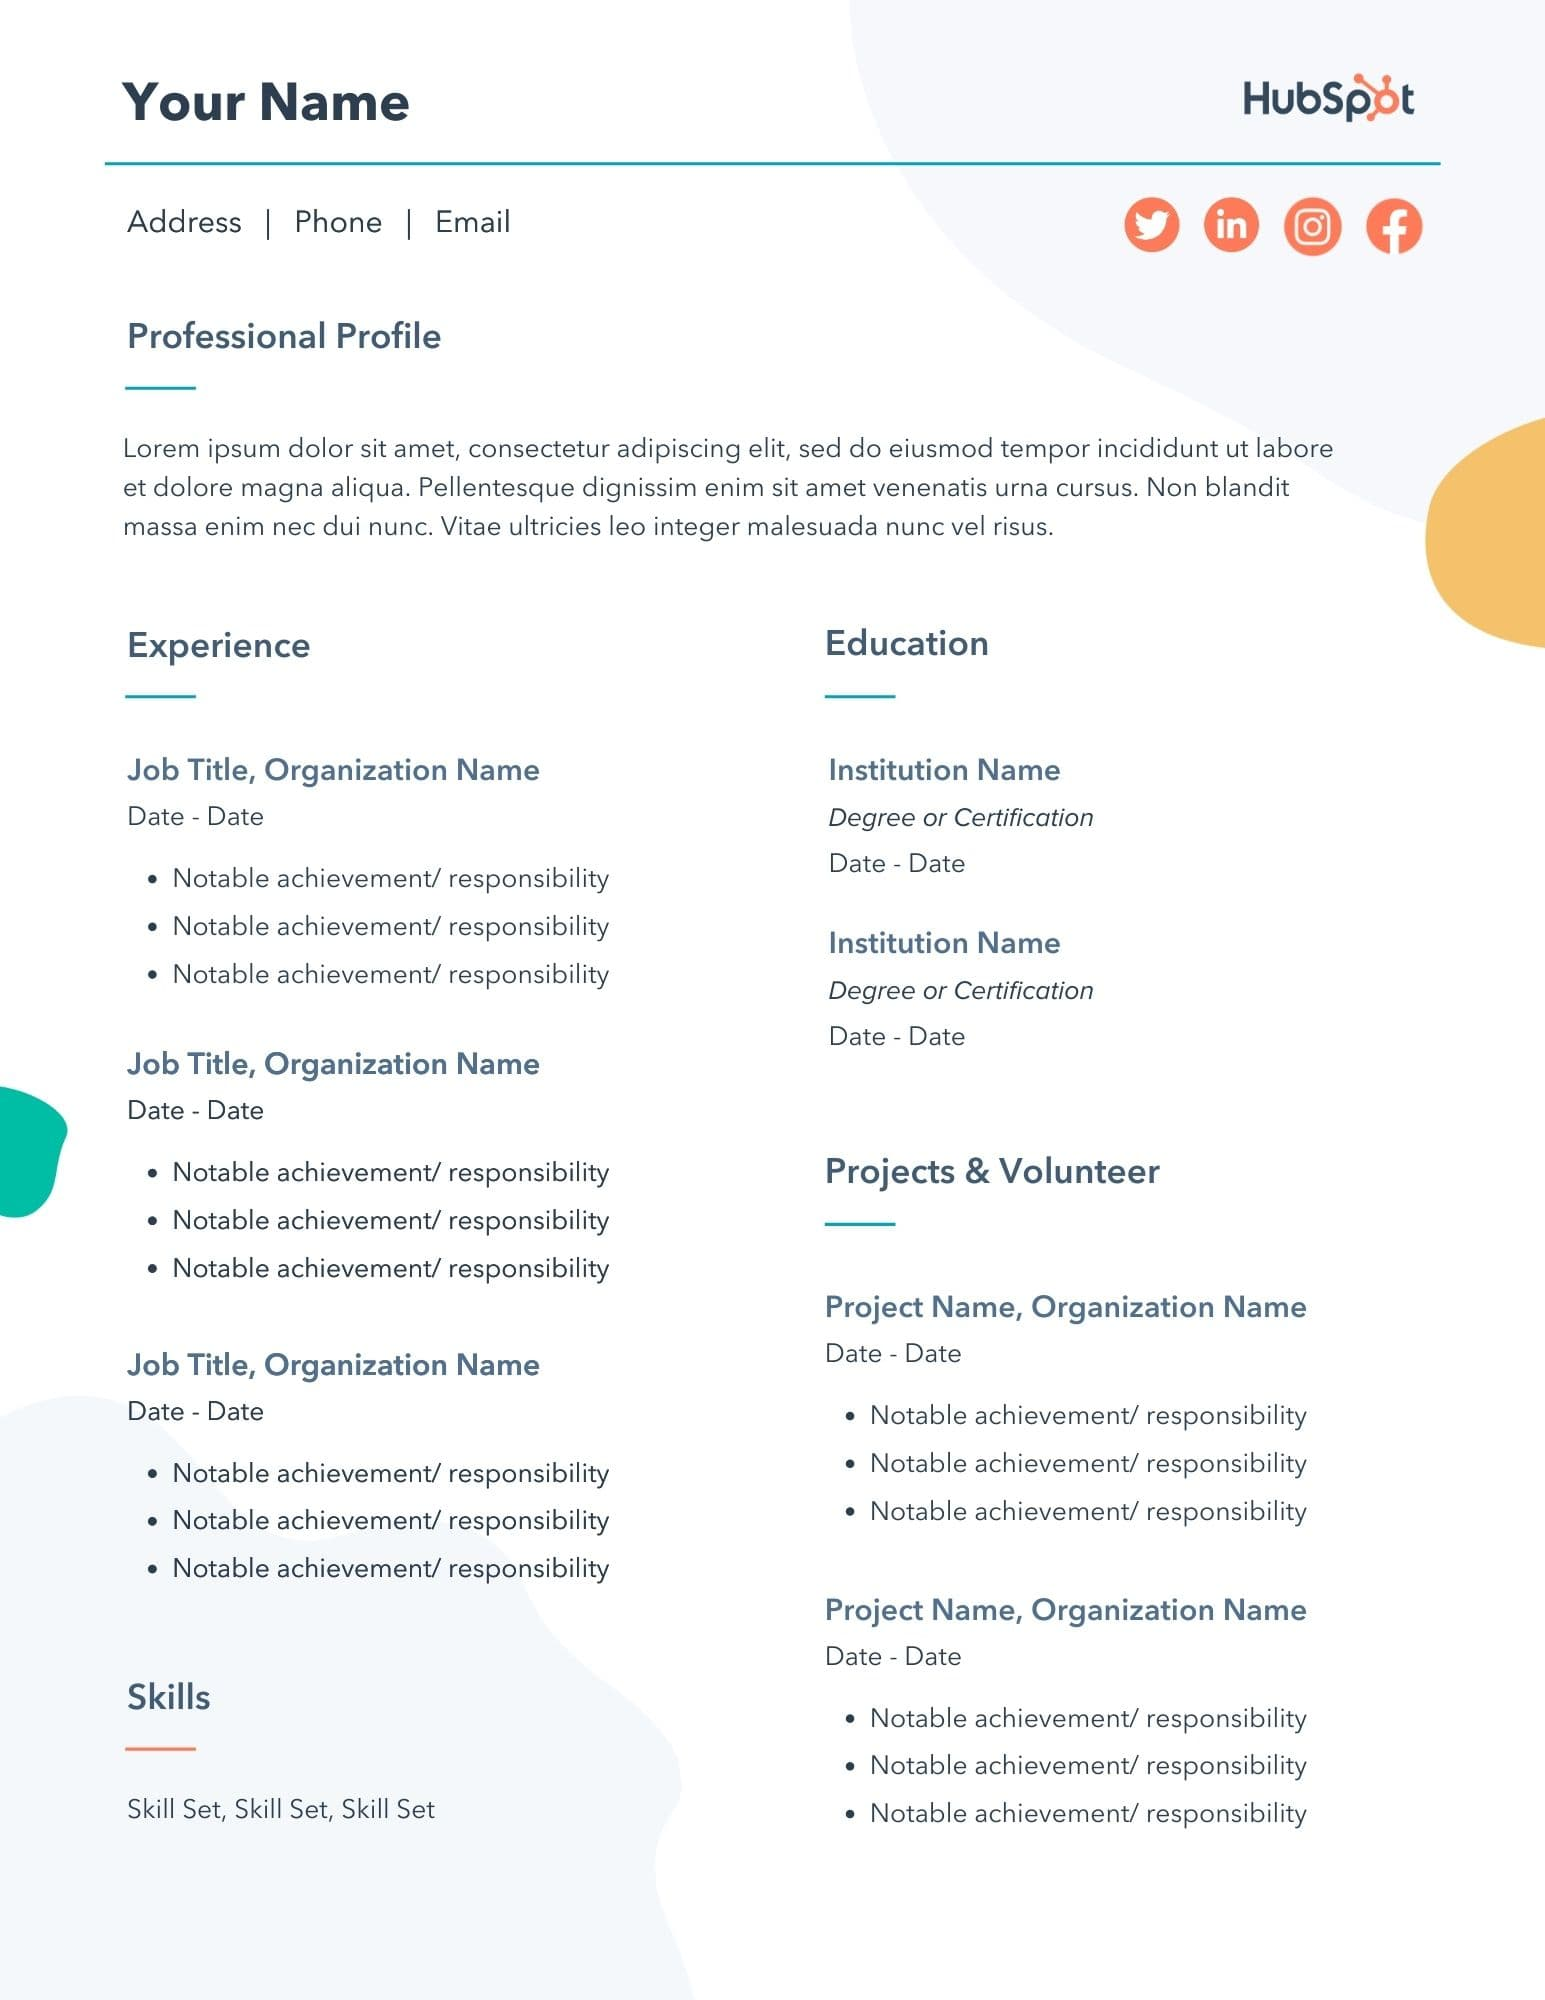 free resume templates for microsoft word to make your own pdf template telecommunications Resume Resume Templates Free Download Pdf